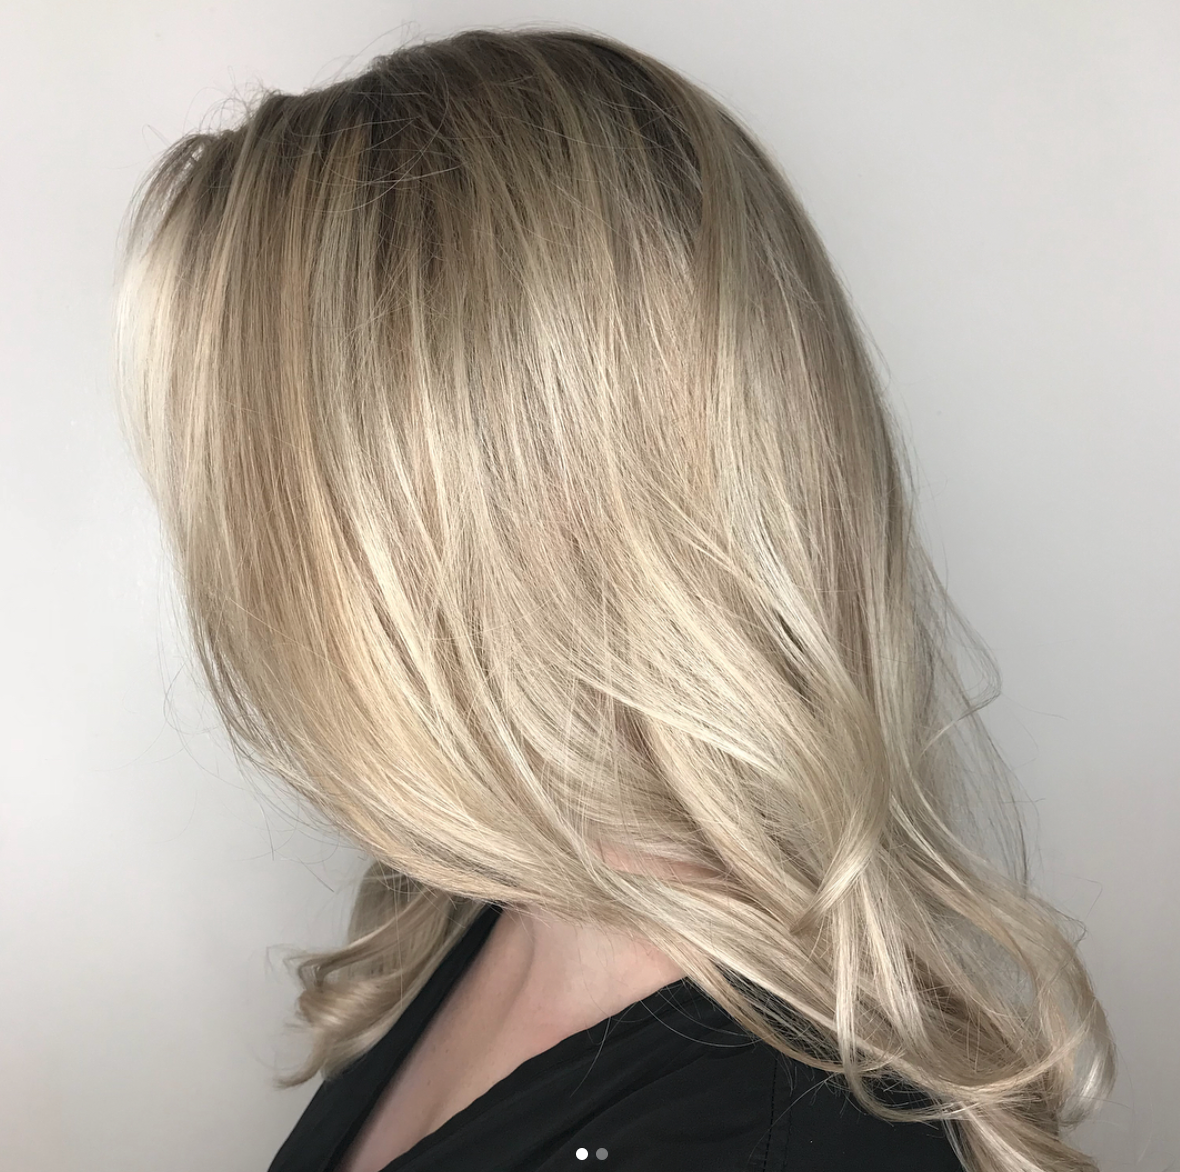 Noel Gawrysiak Allen Stylist Blonde Highlights